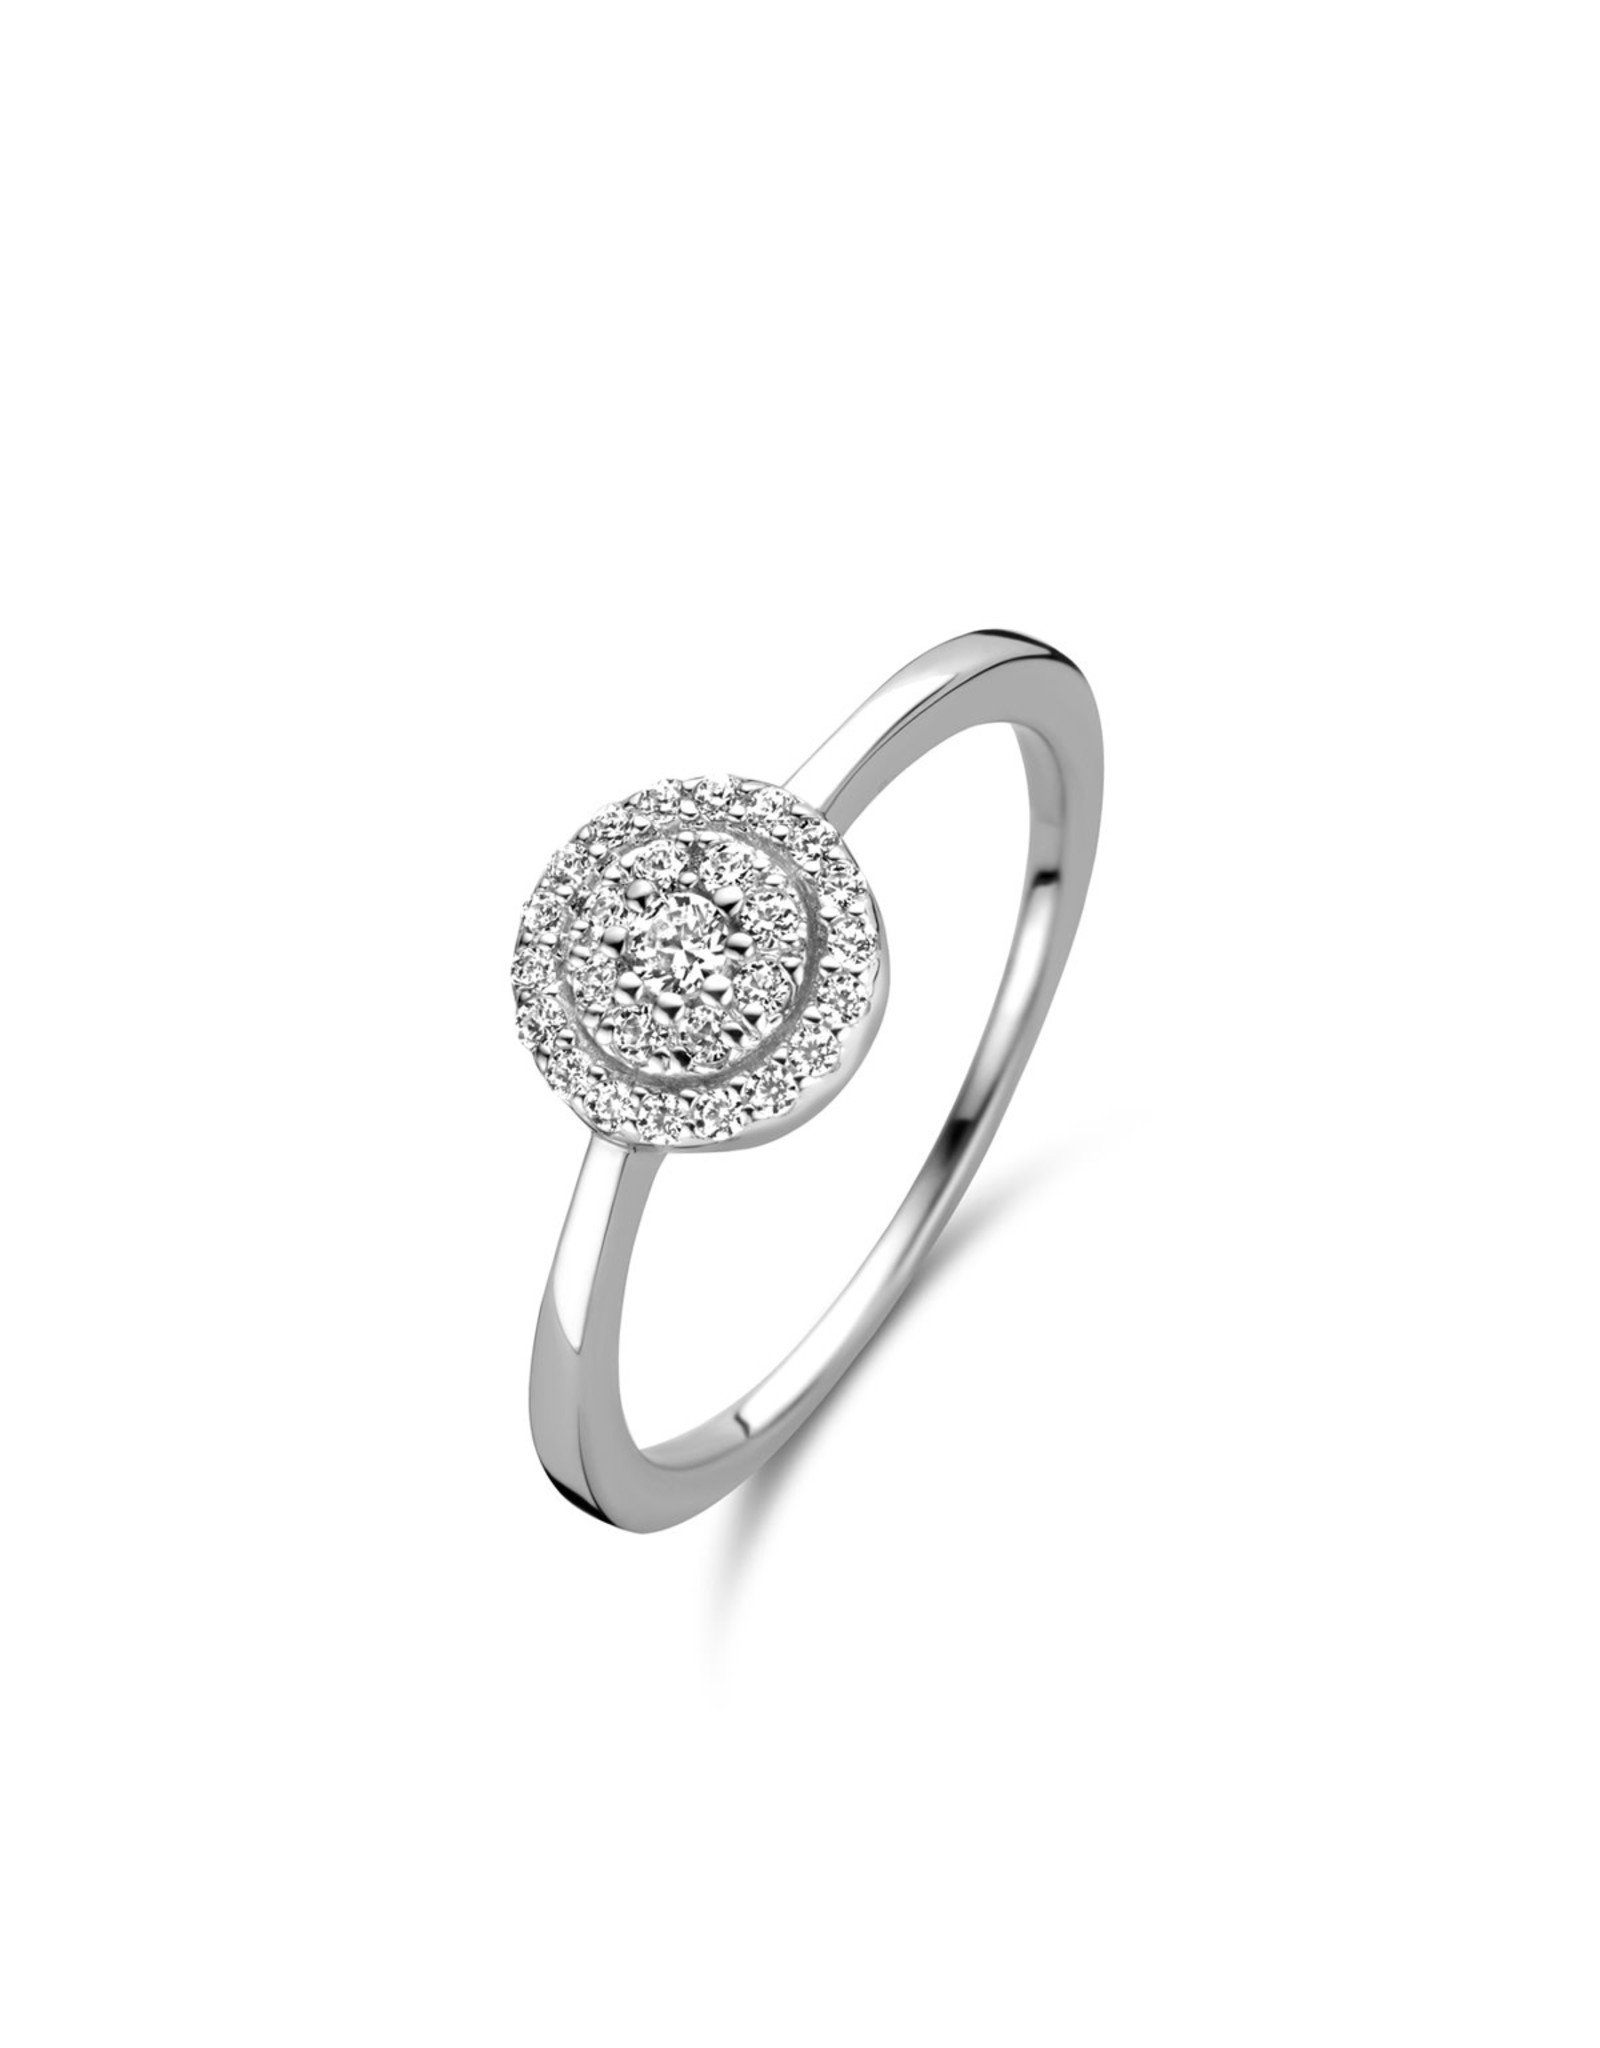 Ring Naiomy Silver N0R51 Zilver